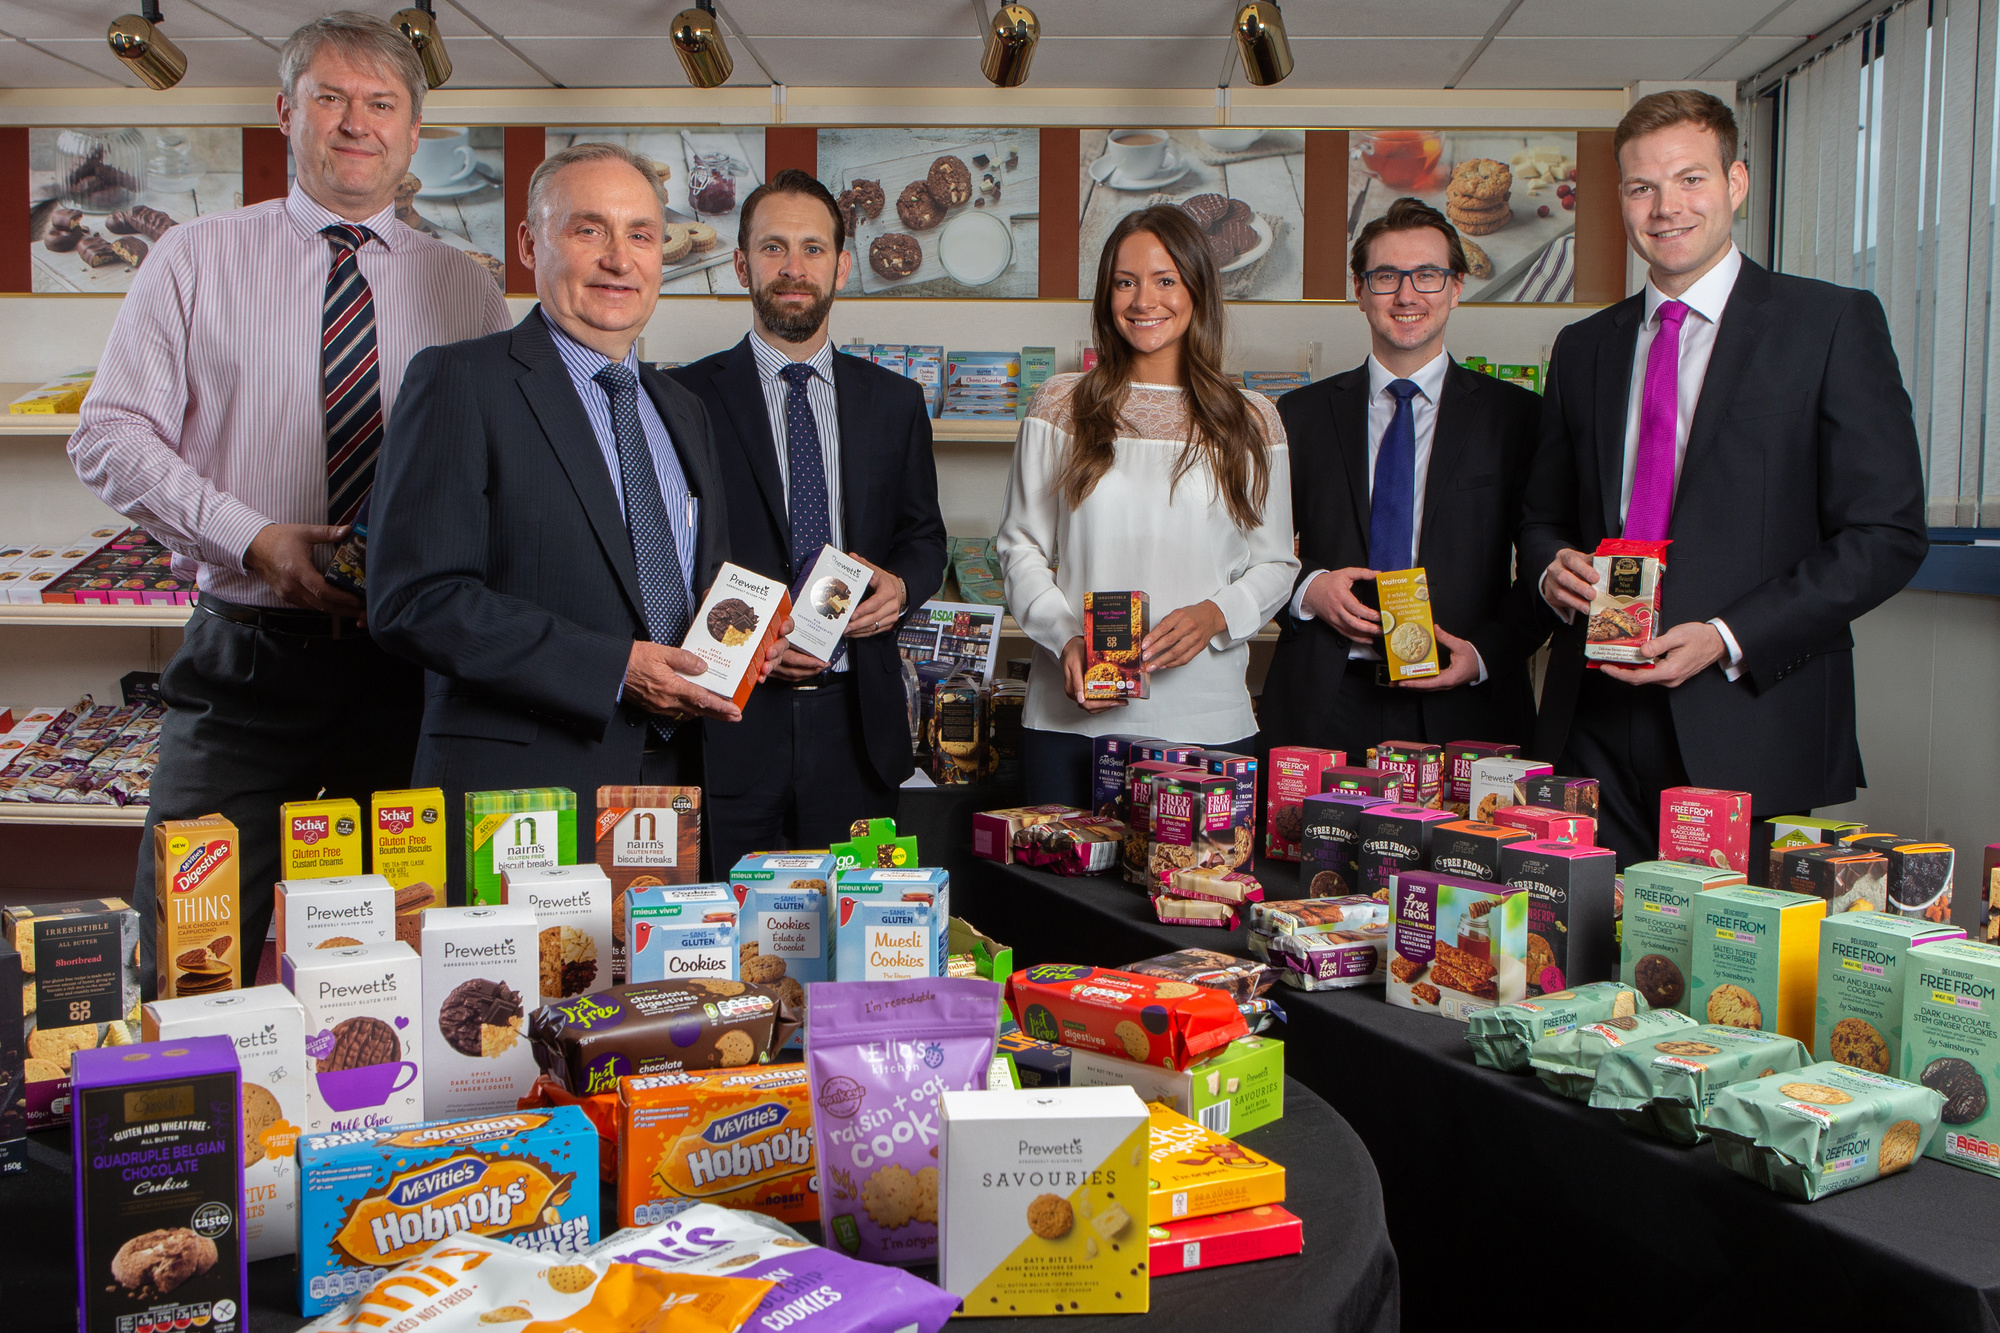 From left: Julian Wood, Financial Director, and Stewart McLelland, Managing Director (Northumbrian Fine Foods) with Philip Clare, Claire Willcock, Harry Hobson and Adam Rayner (Muckle LLP)